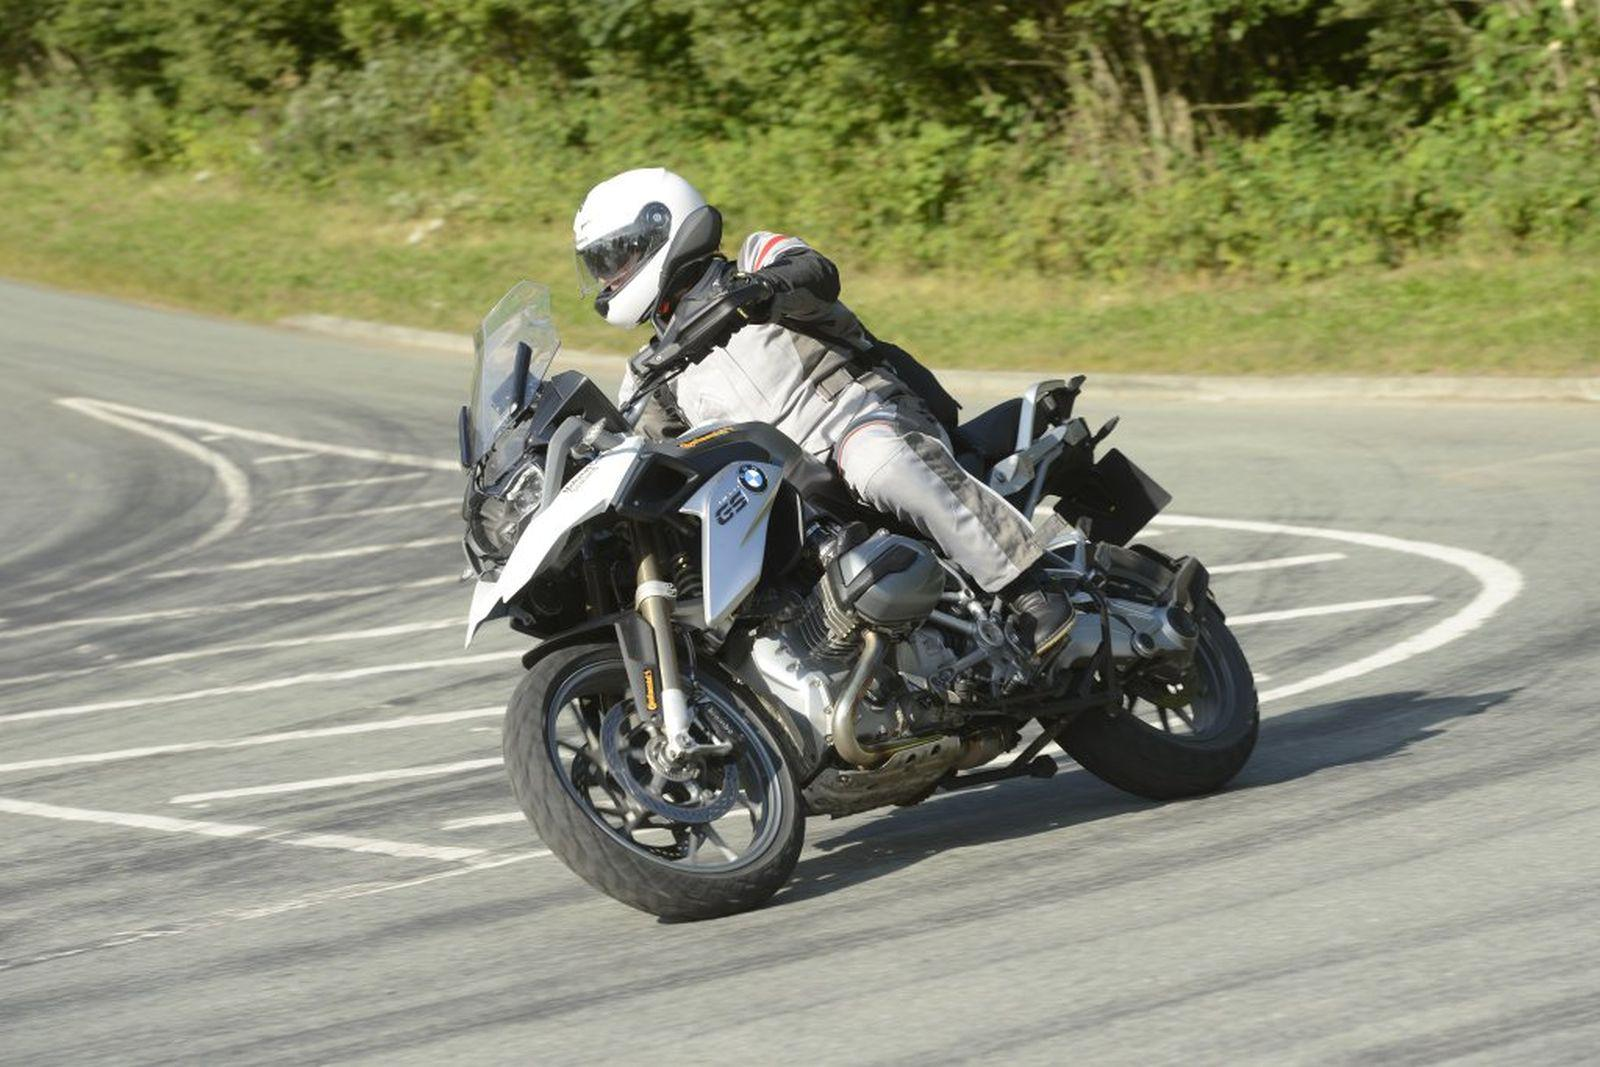 http://www.motorrad-bilder.at/slideshows/291/011359/continental_tkc_70_test_5.jpg